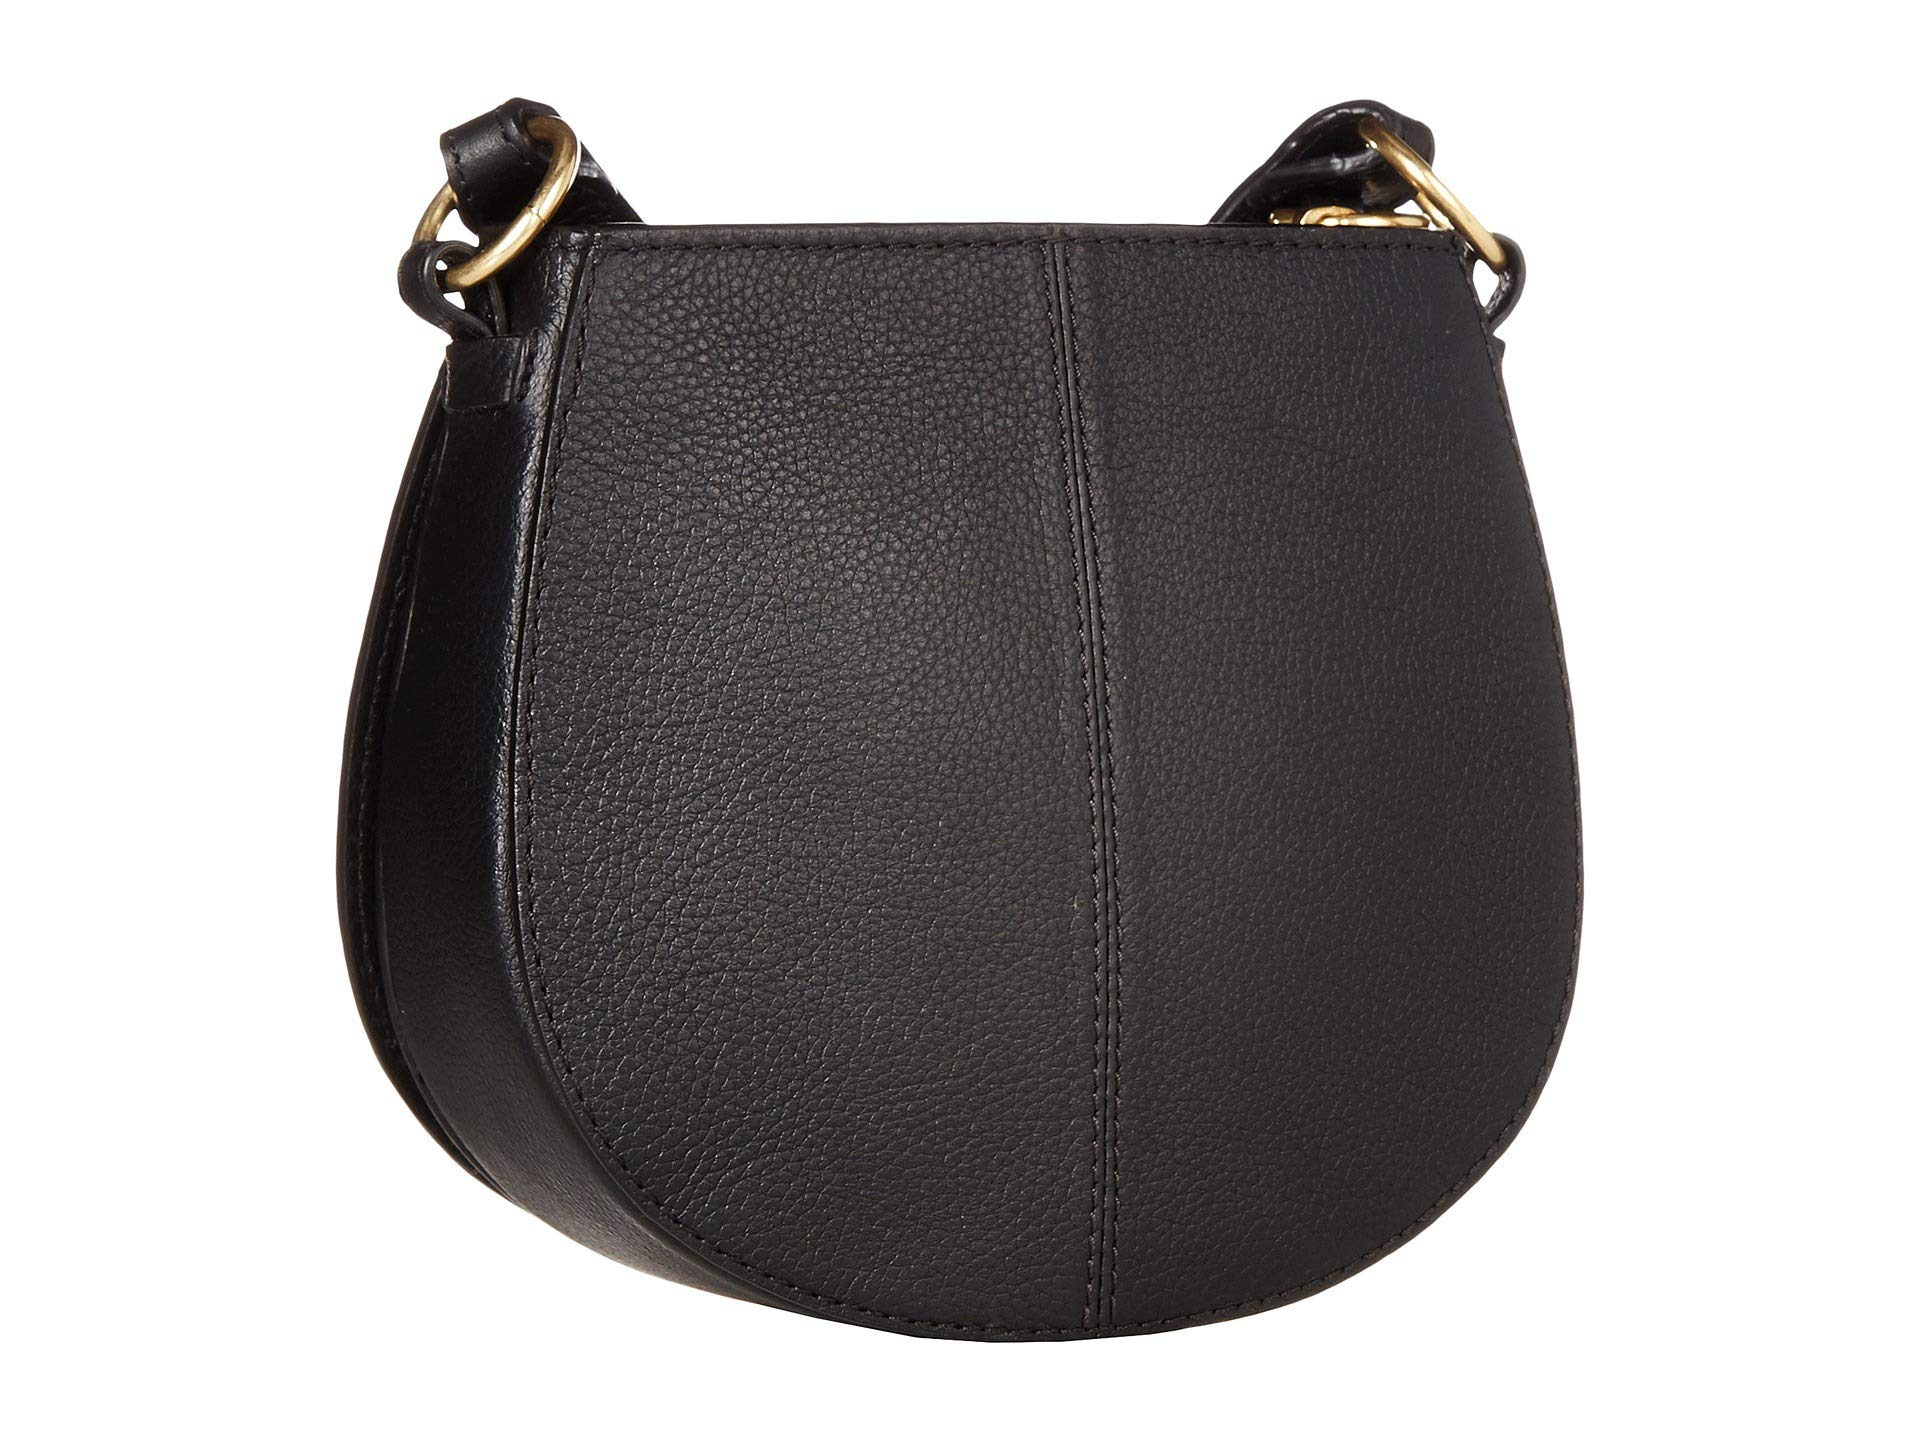 See Black Mini Bag Kriss Chloe By Saddle YnPTxHtnrq